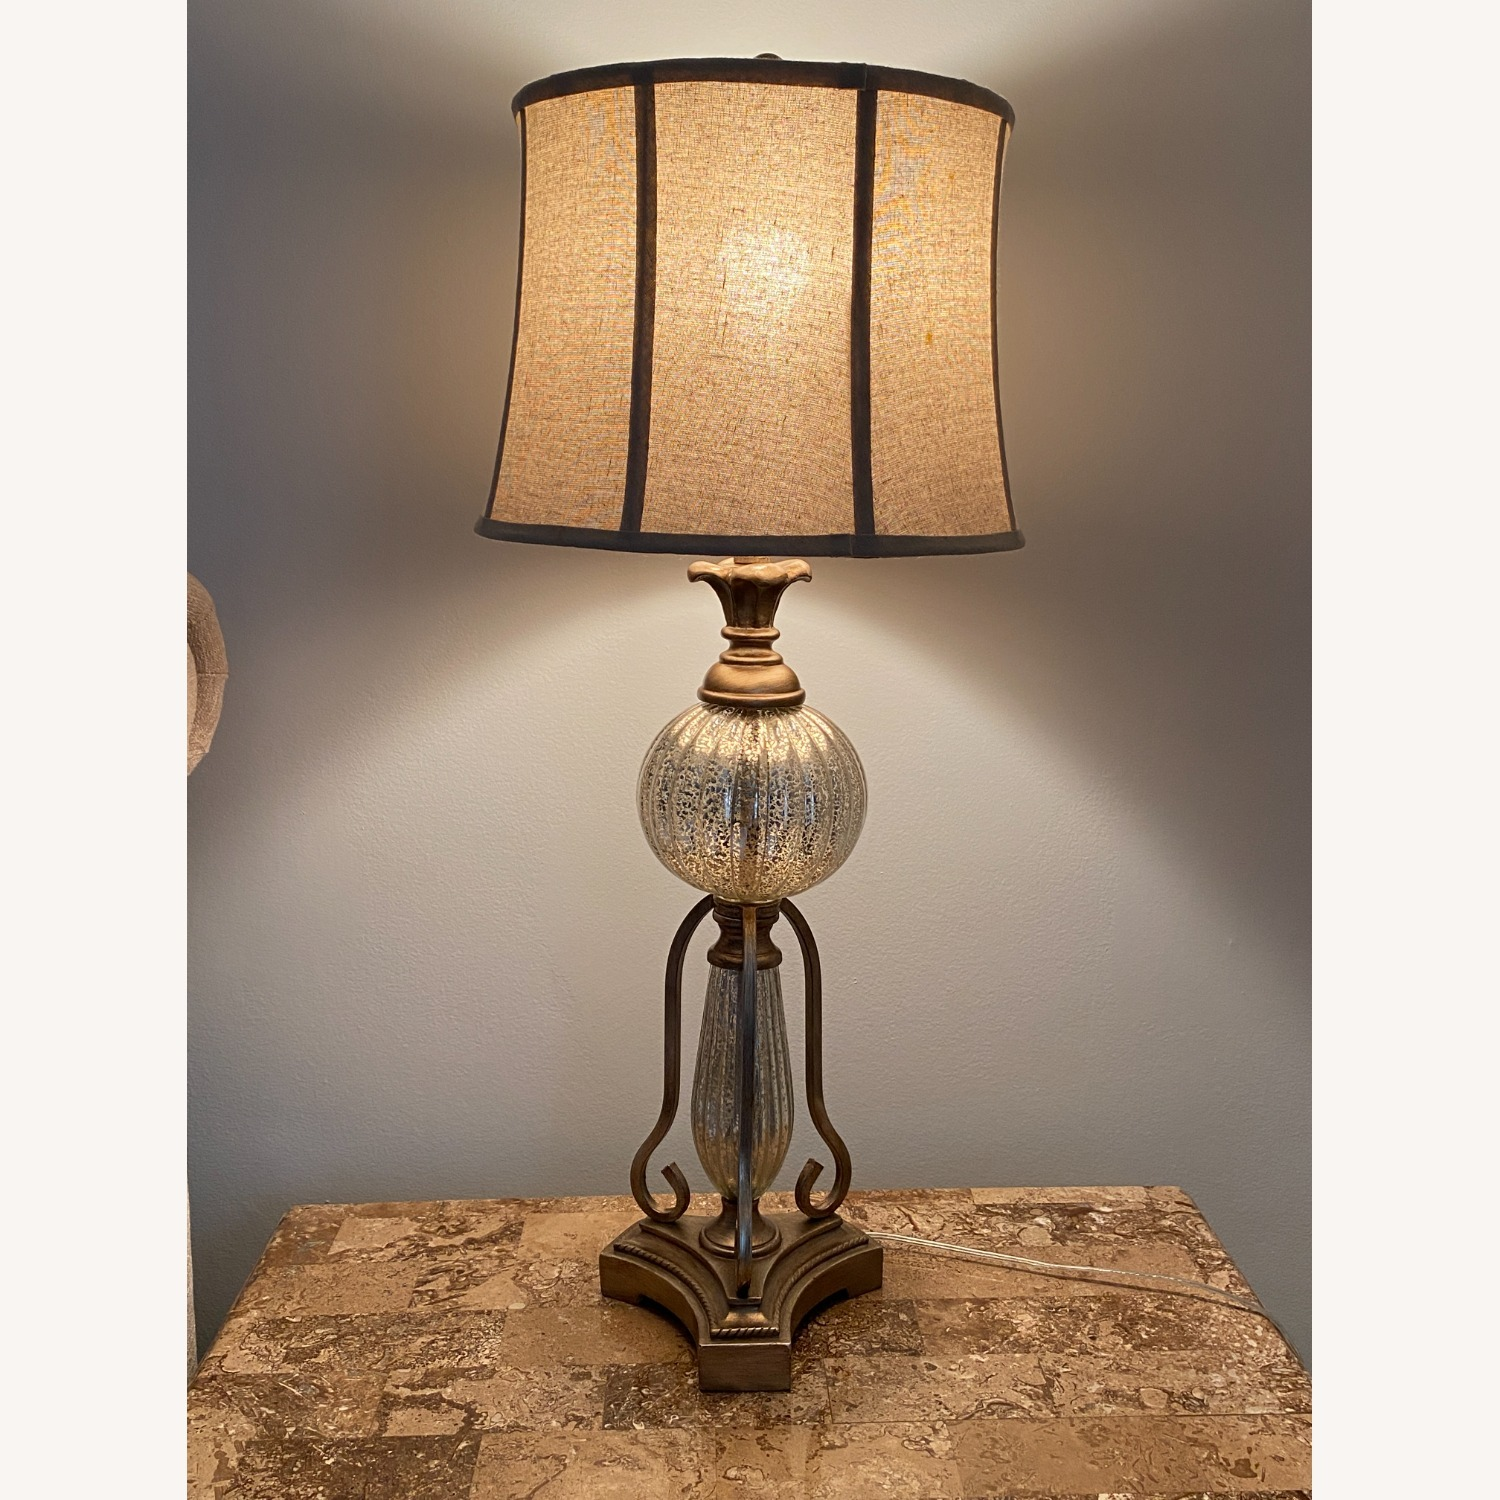 Decorative Table Lamps - image-2